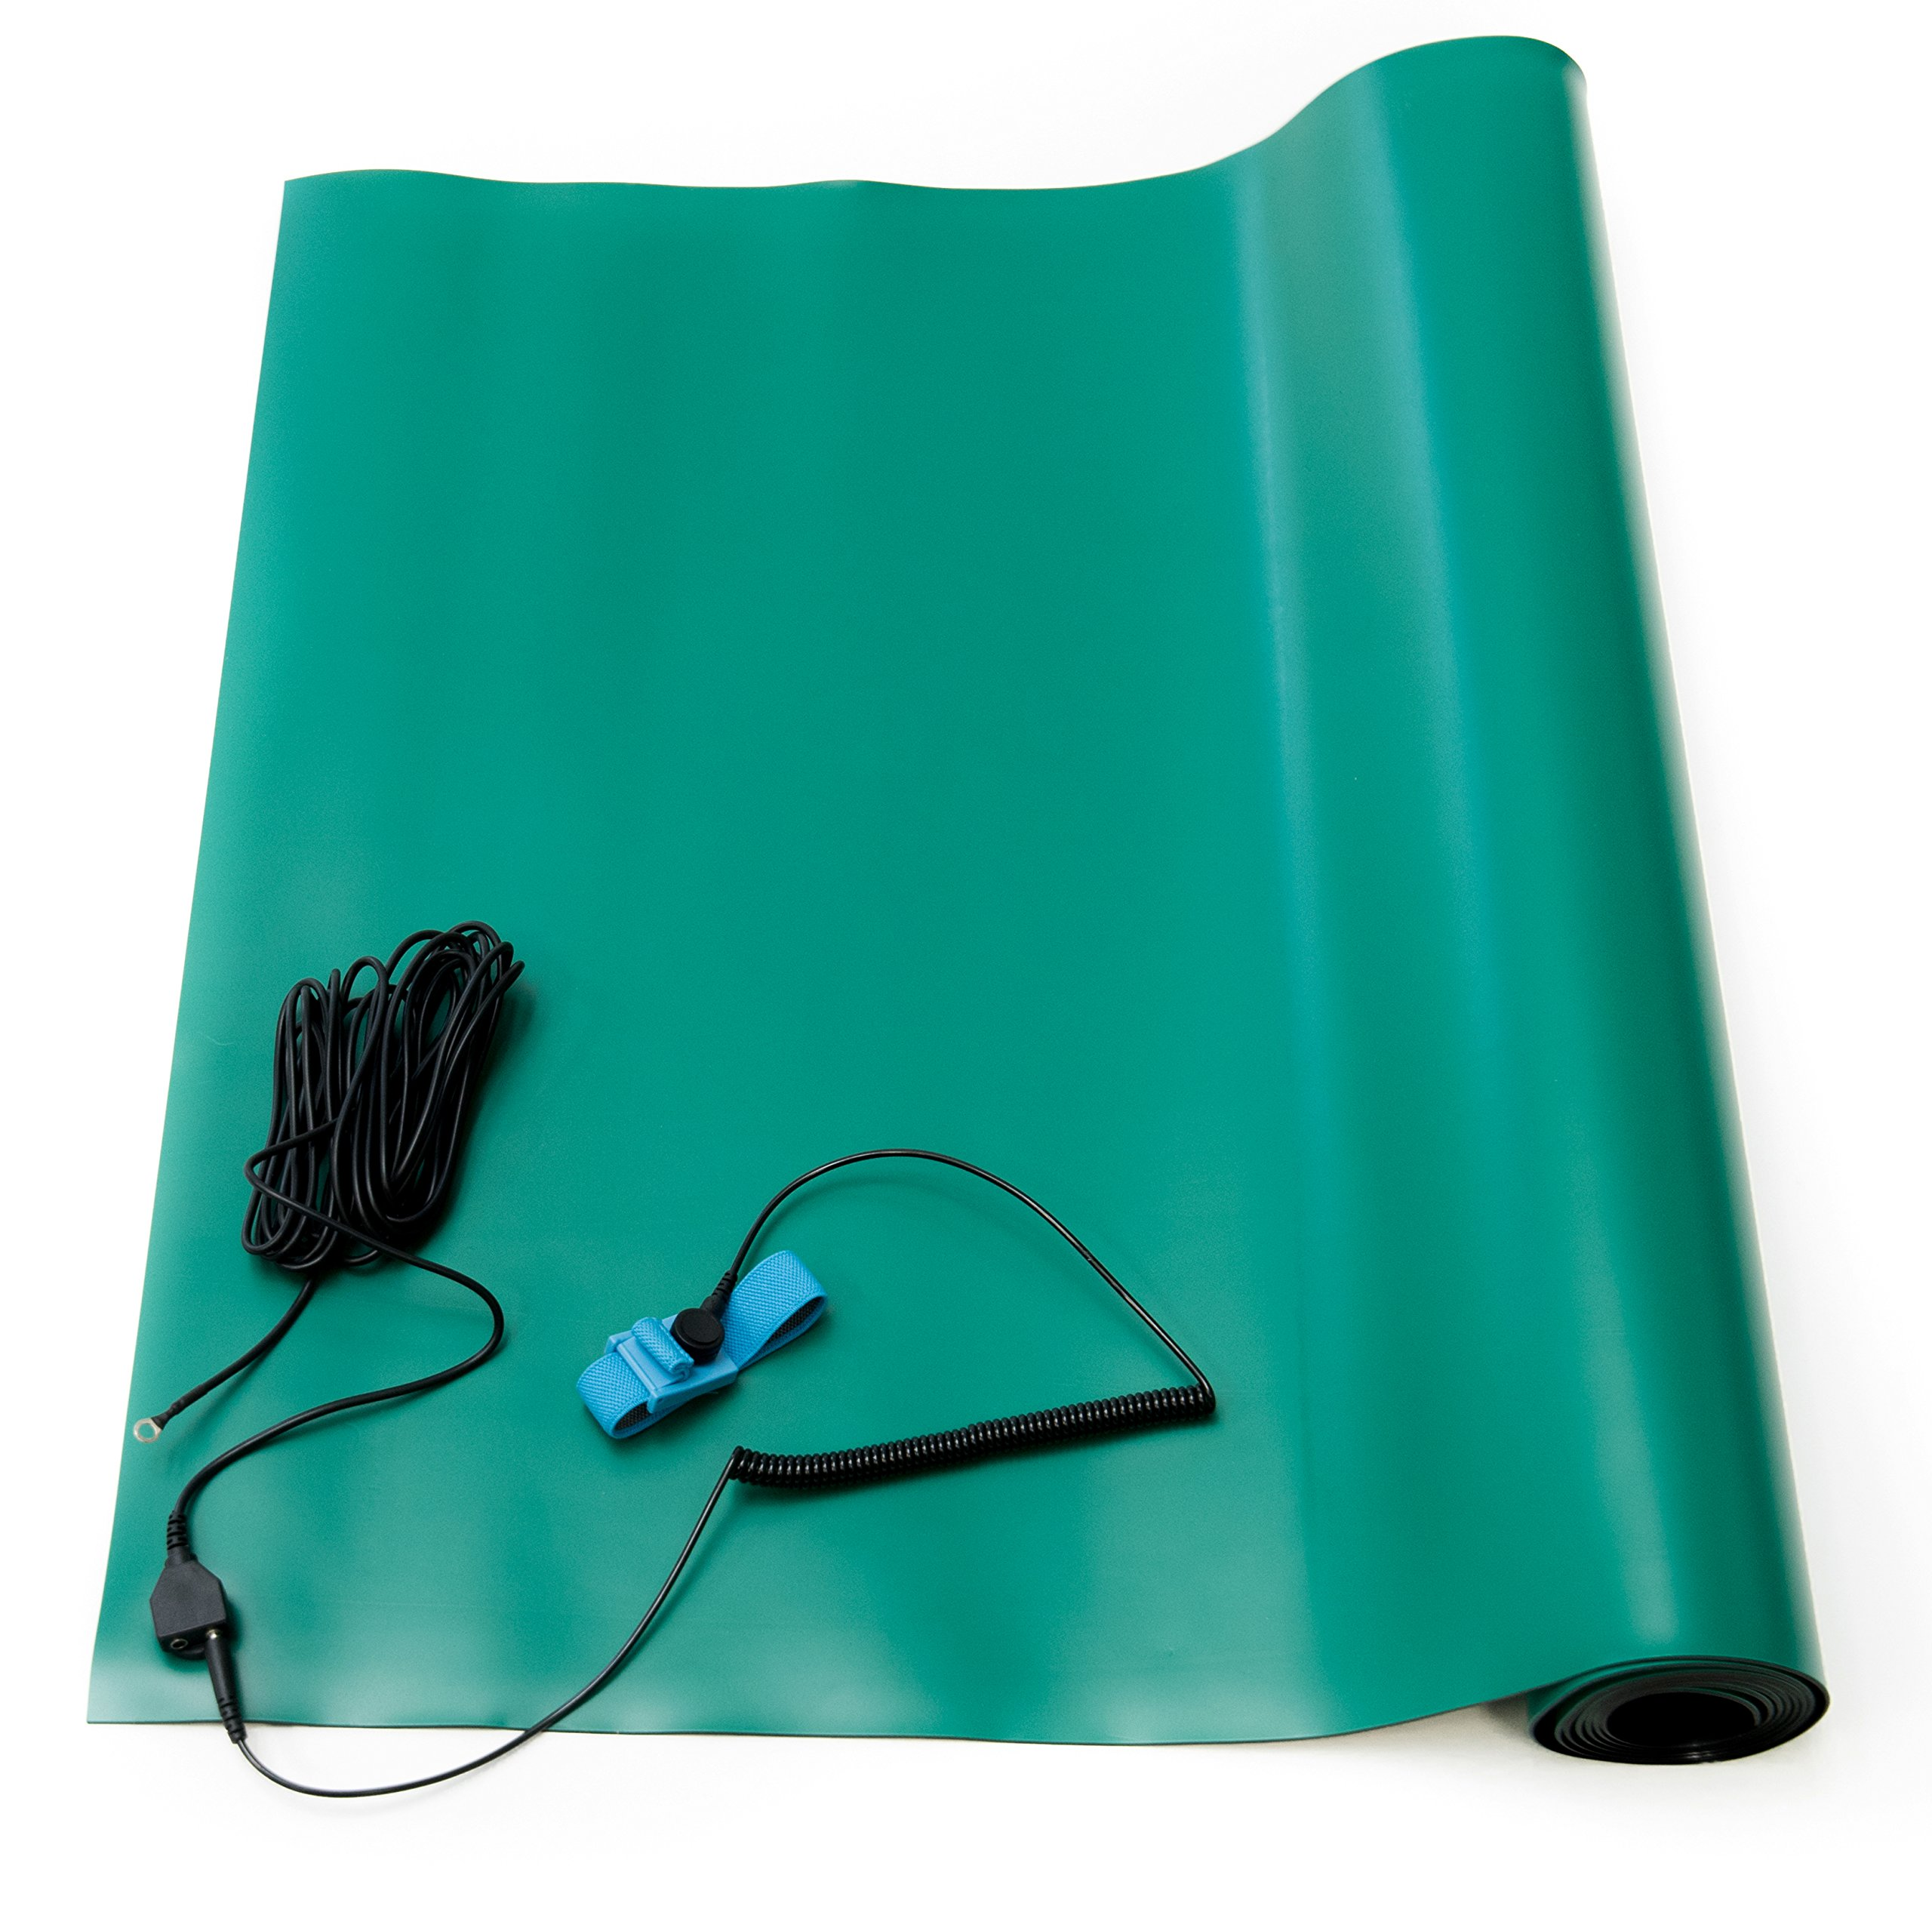 Bertech ESD High Temperature Rubber Mat Kit with a Wrist Strap and Grounding Cord, 2.5' Wide x 4' Long x 0.08'' Thick, Green